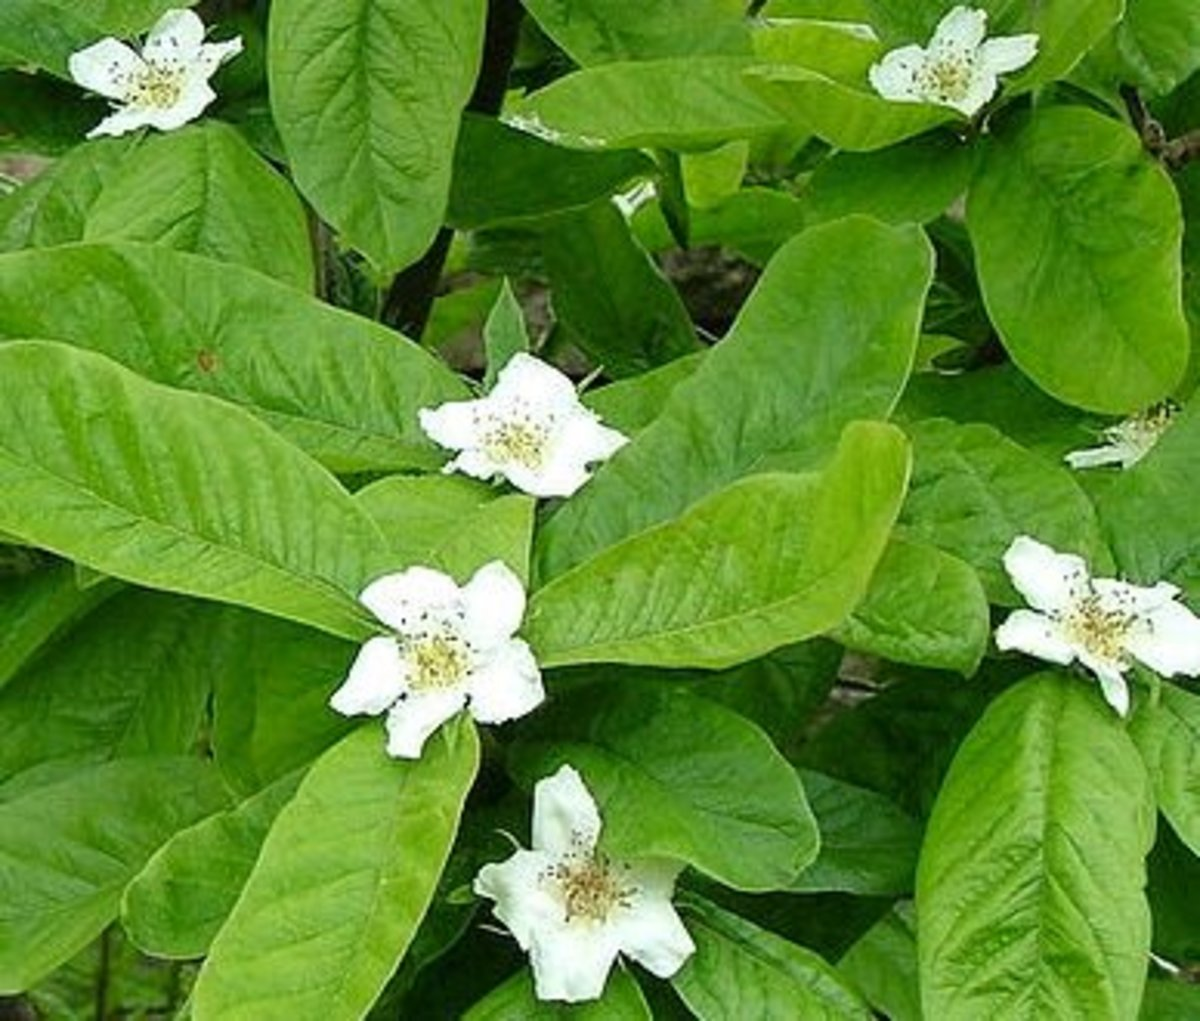 Medlar blossoms and leaves